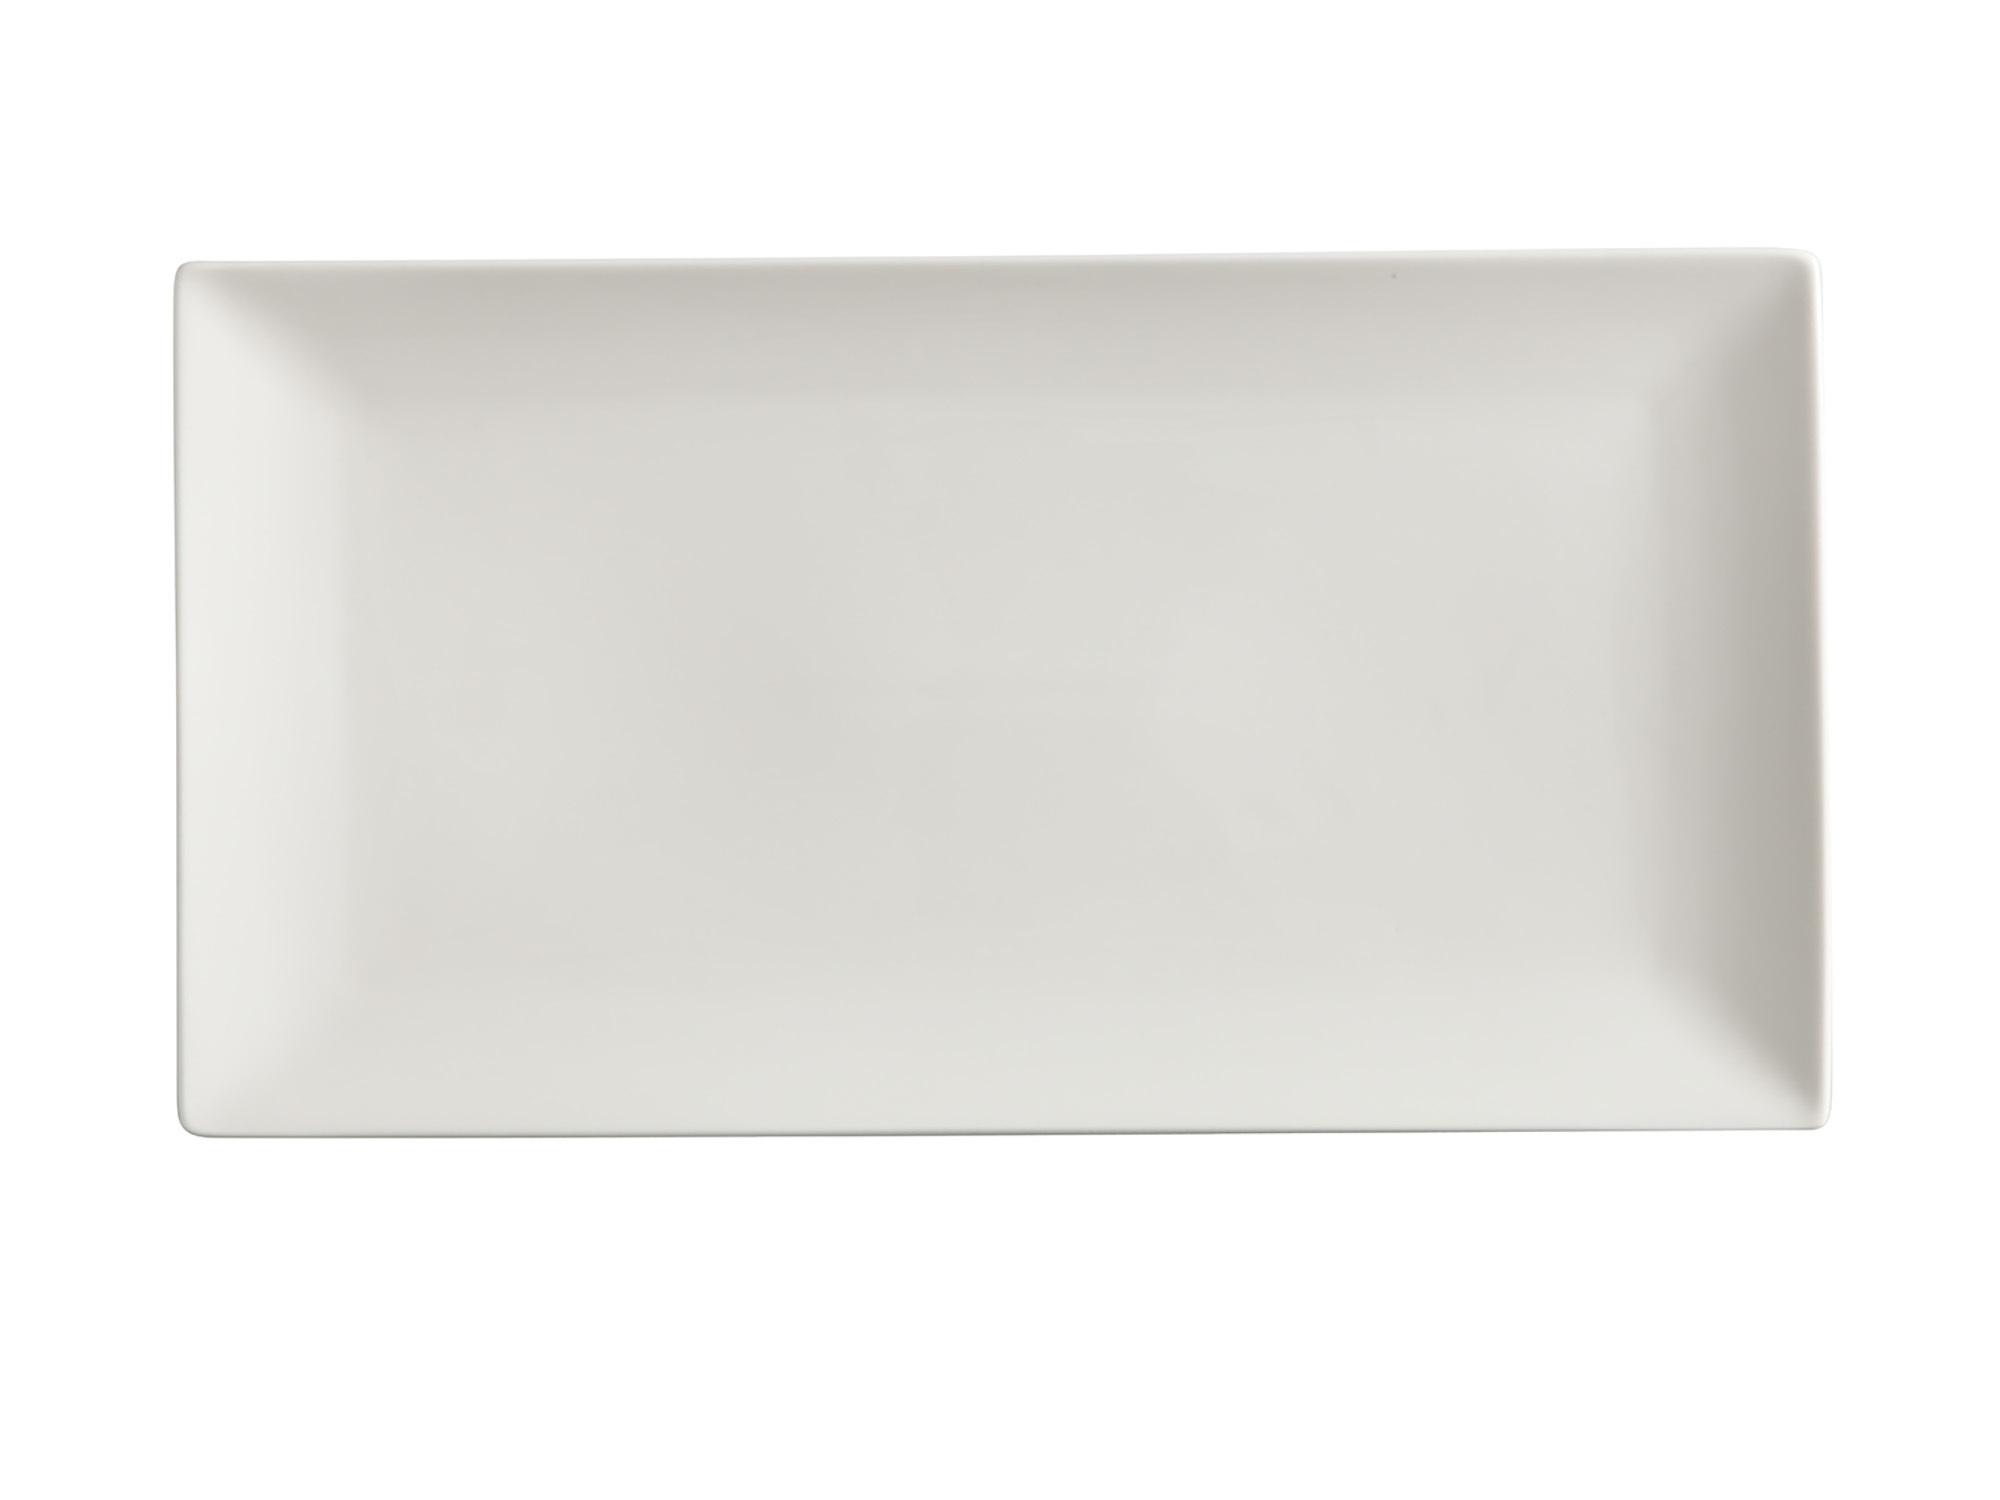 Maxwell & Williams White Basics Linear 35X19Cm Rectangle Platter Gift Boxed